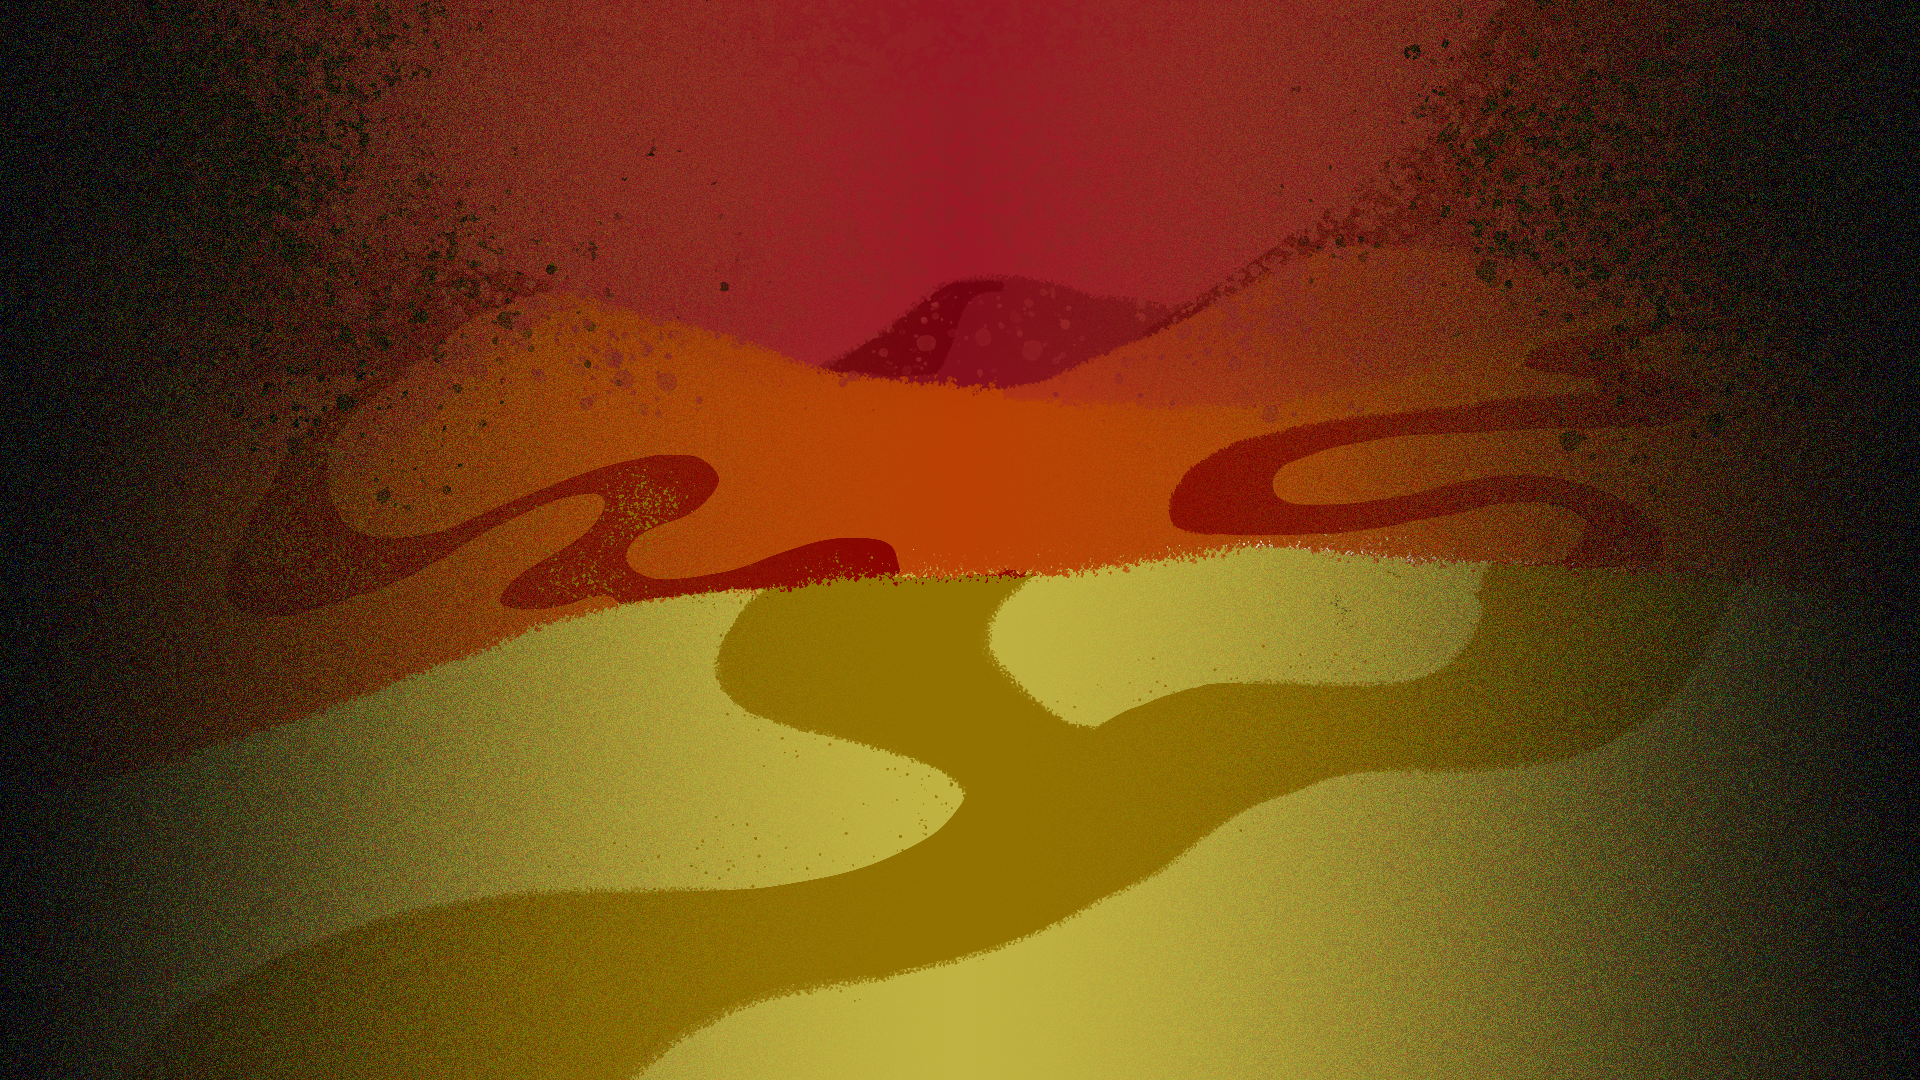 Illustration of a red desert with dunes. In the center a path diverges into a Y intersection.